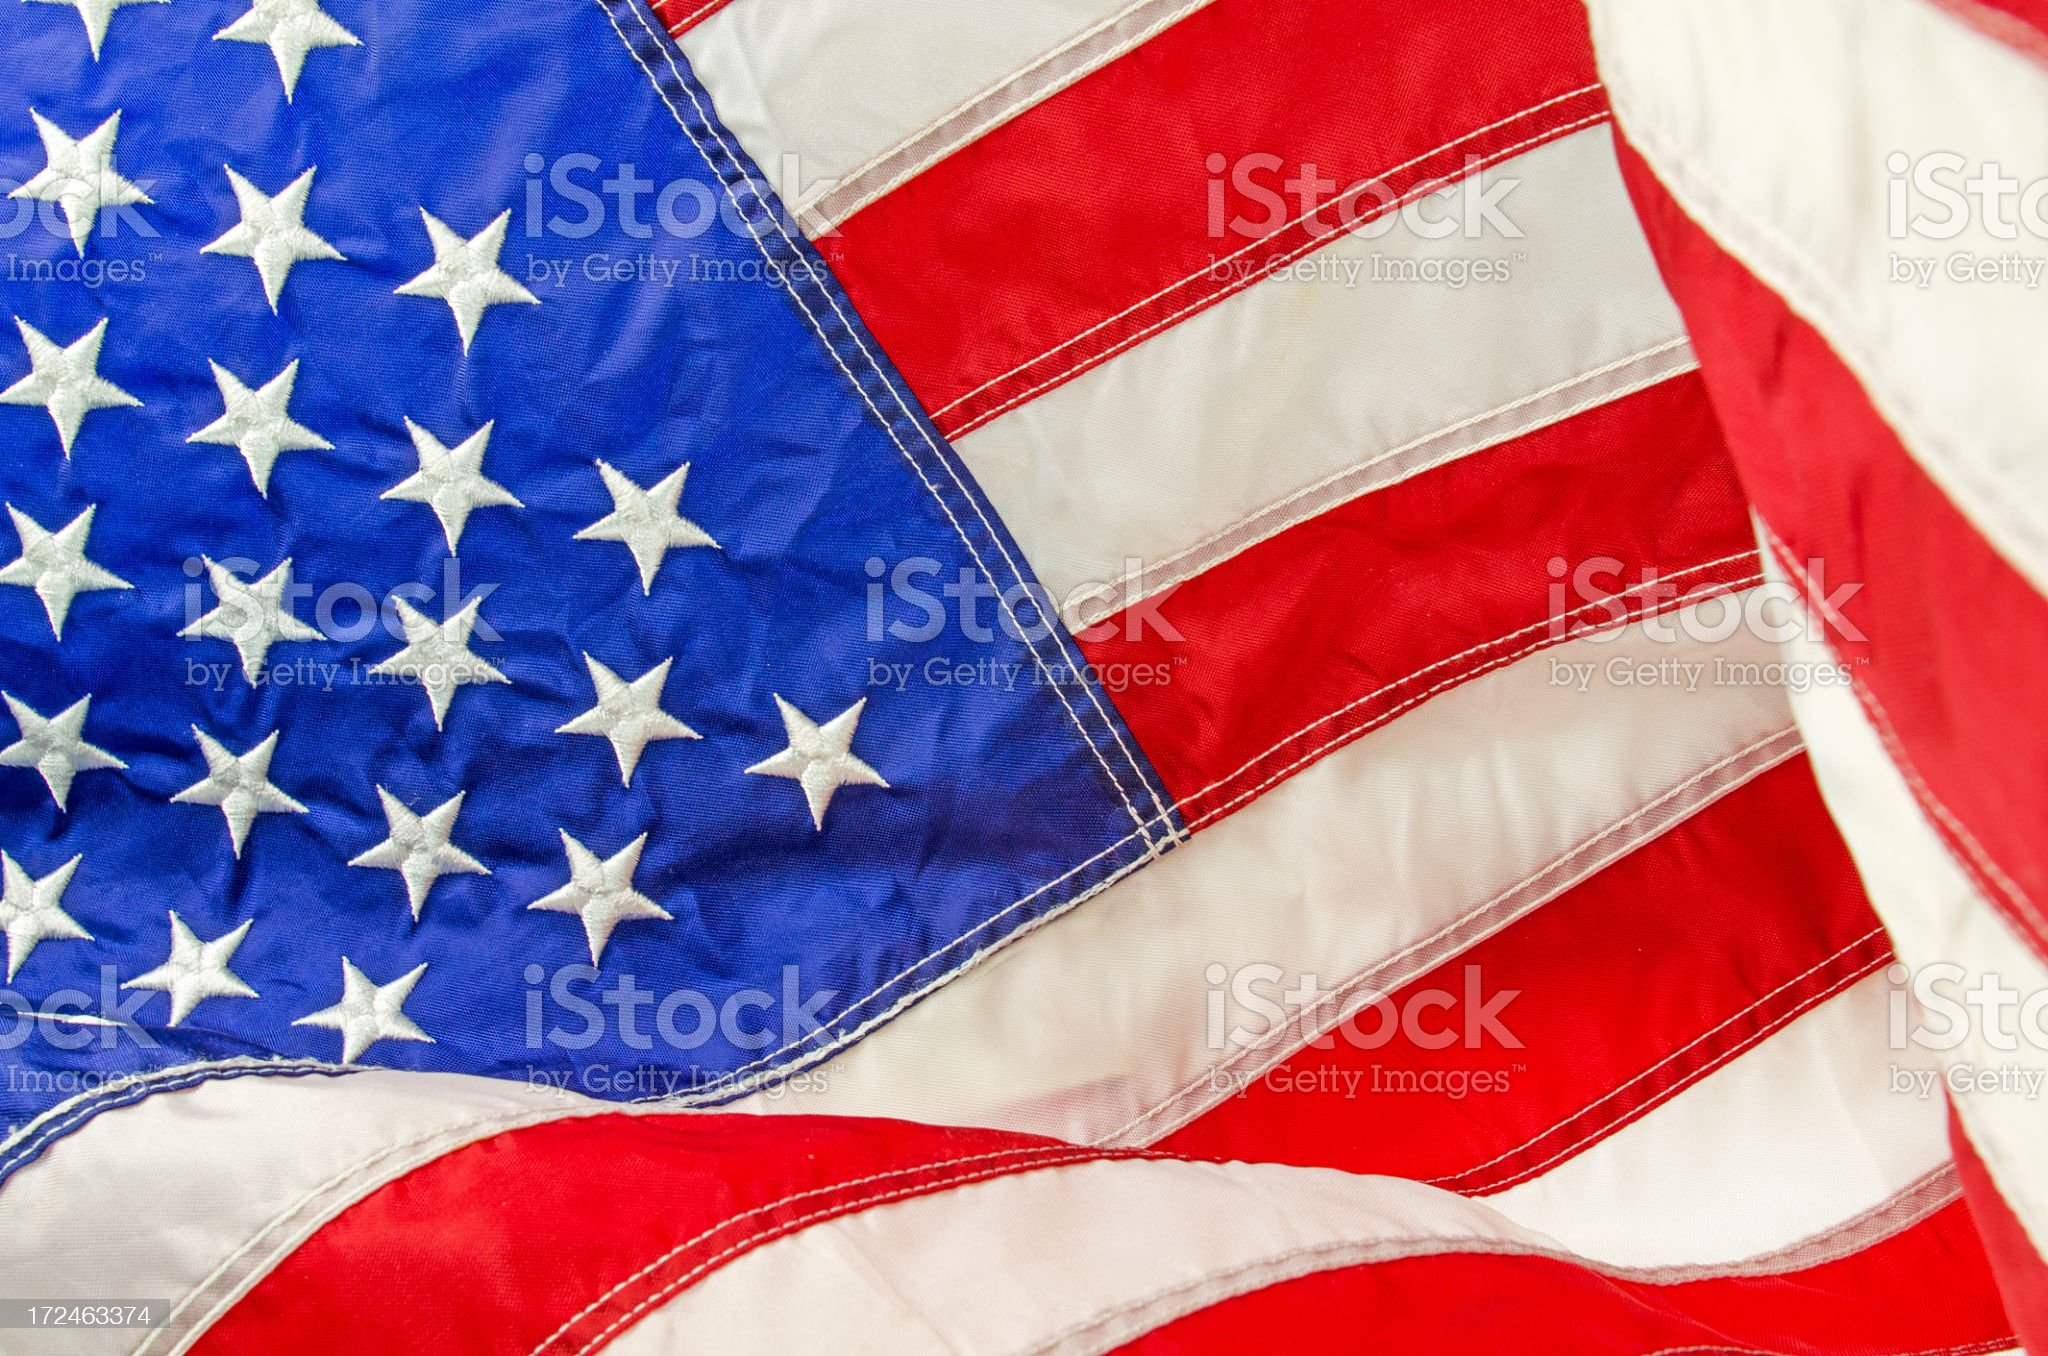 United Staes Flag Close-up royalty-free stock photo